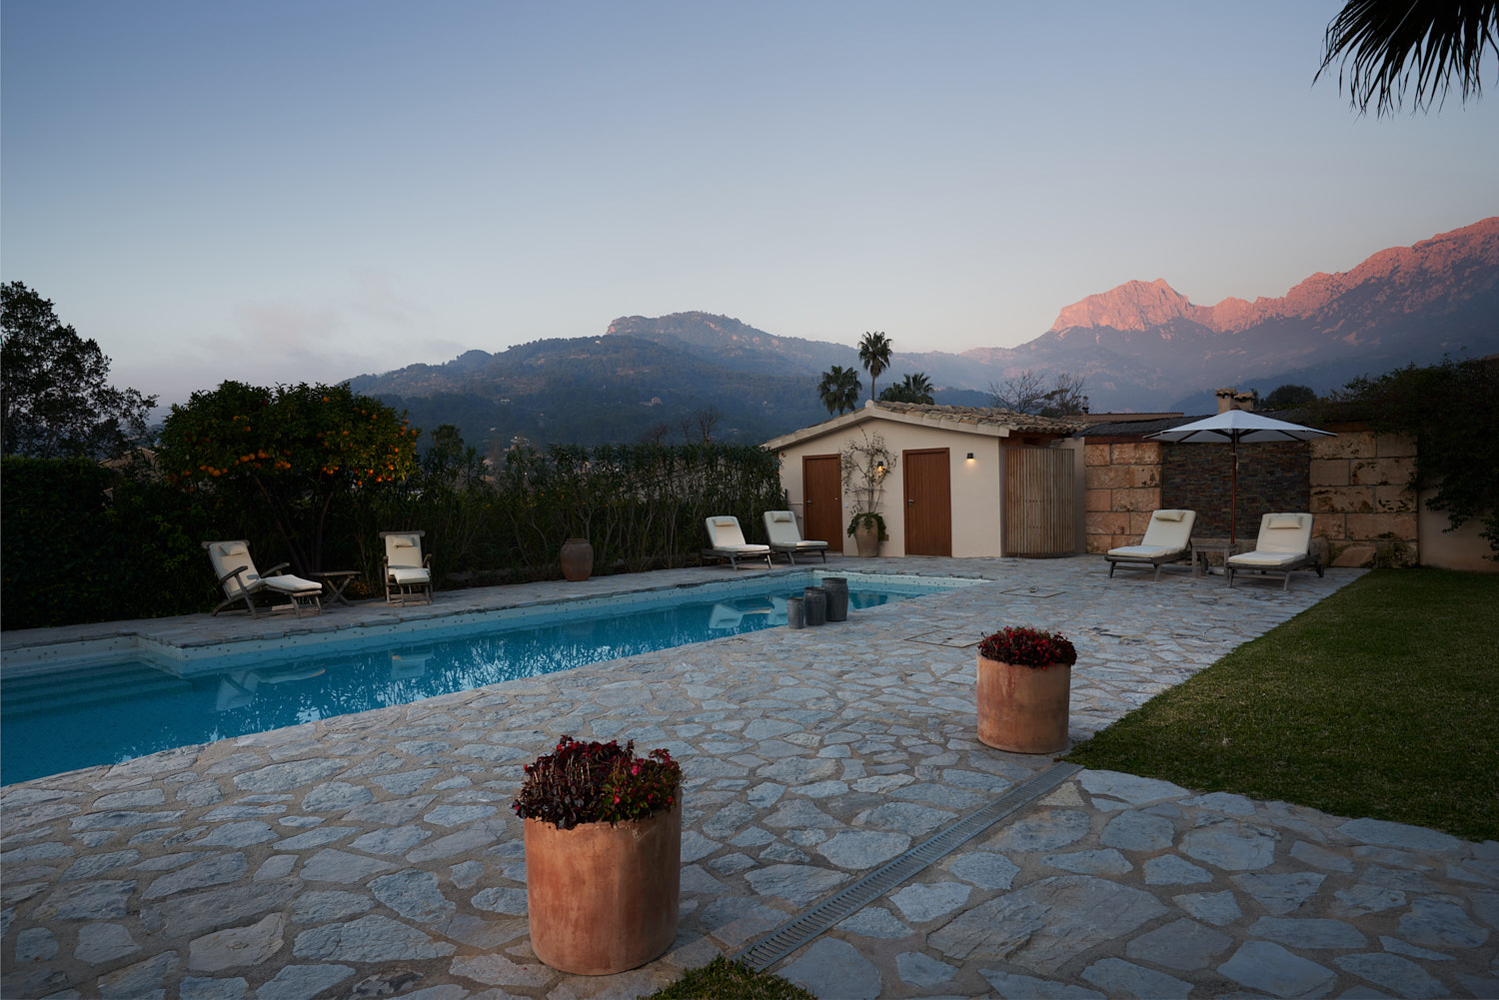 Images of Posada de Balitx, treat yourself... real estate property